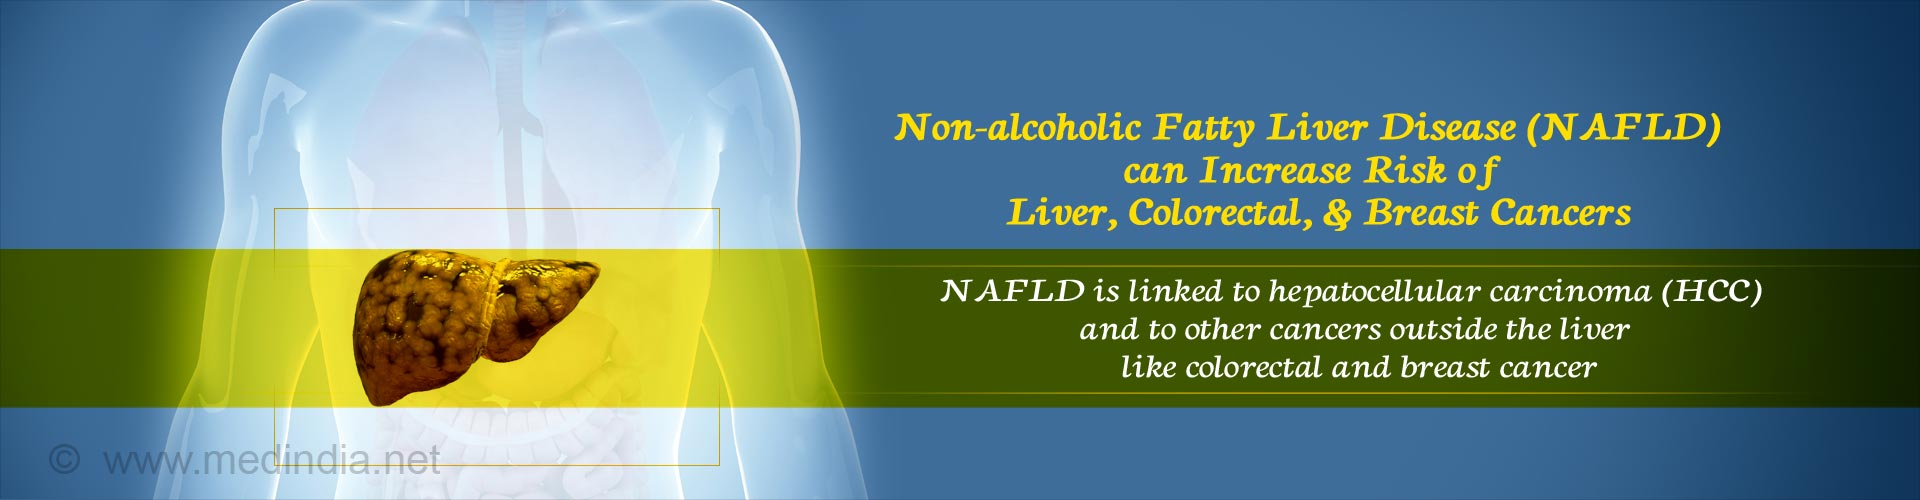 Nonalcoholic Fatty Liver Disease May Up Risk of Various Cancers